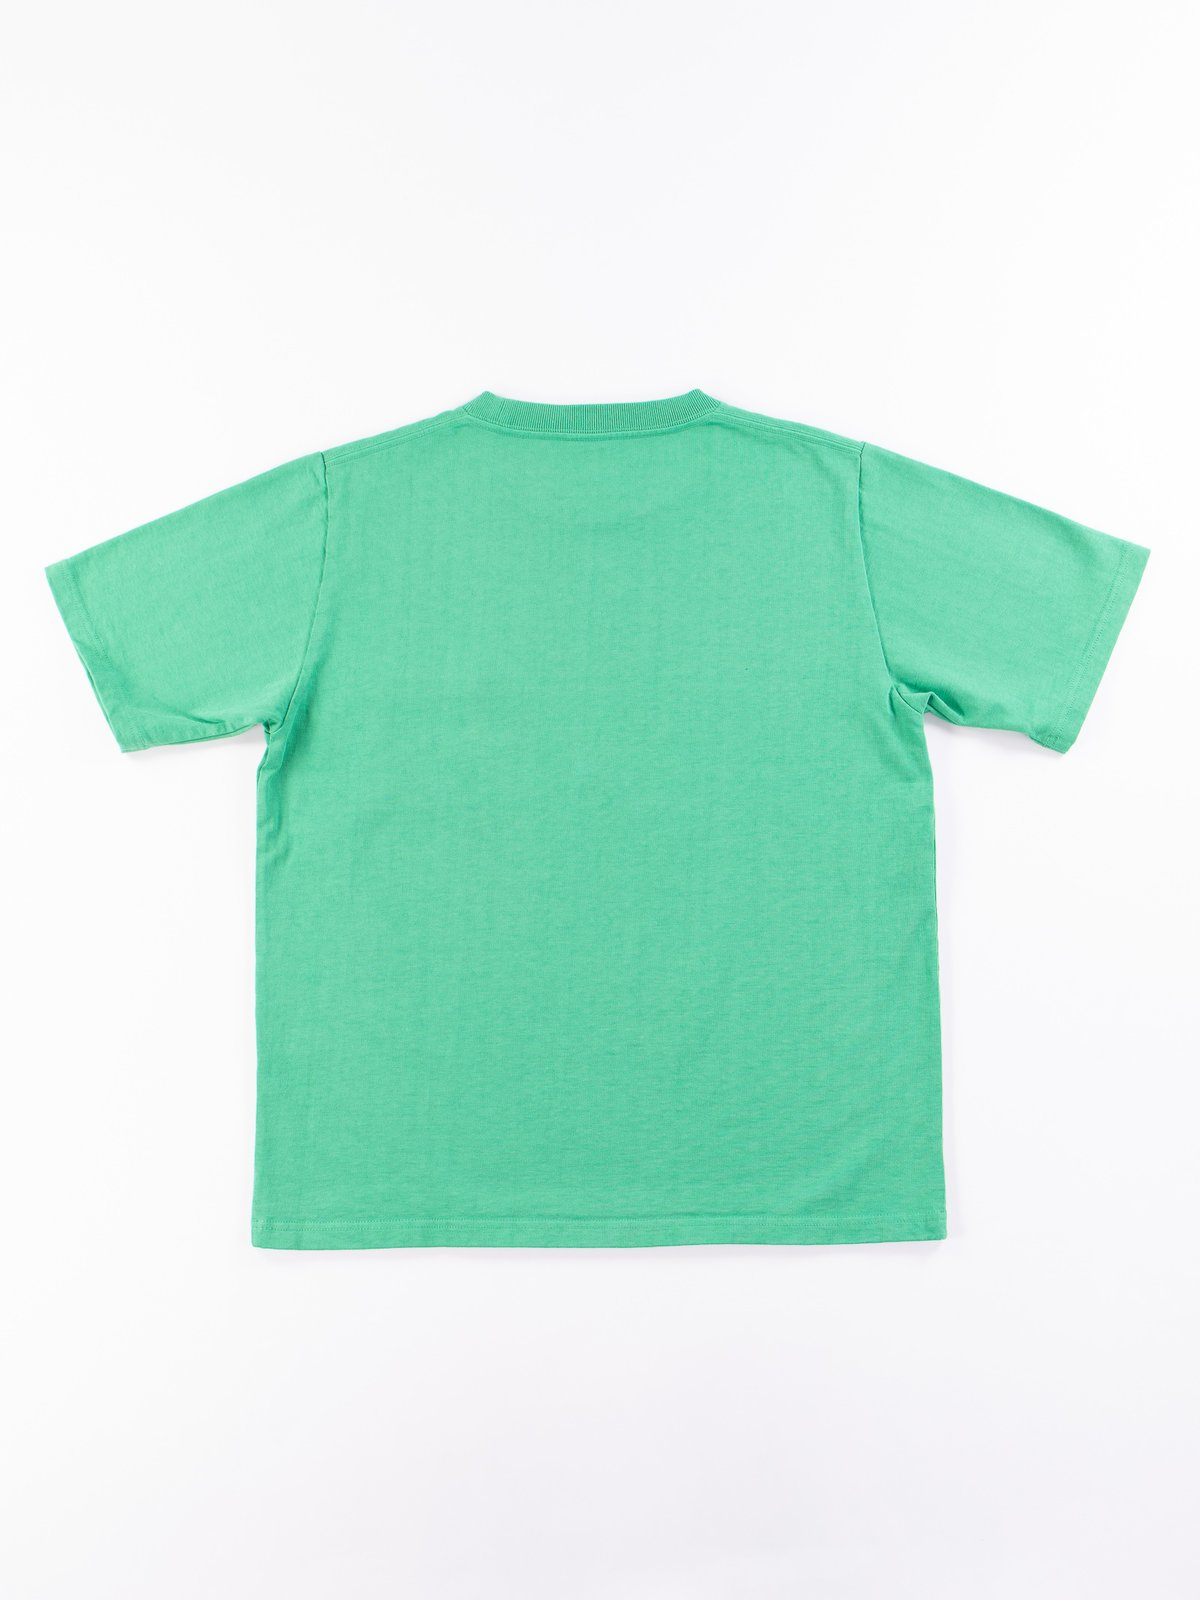 Kelly Green Dotsume Pocket T–Shirt - Image 6